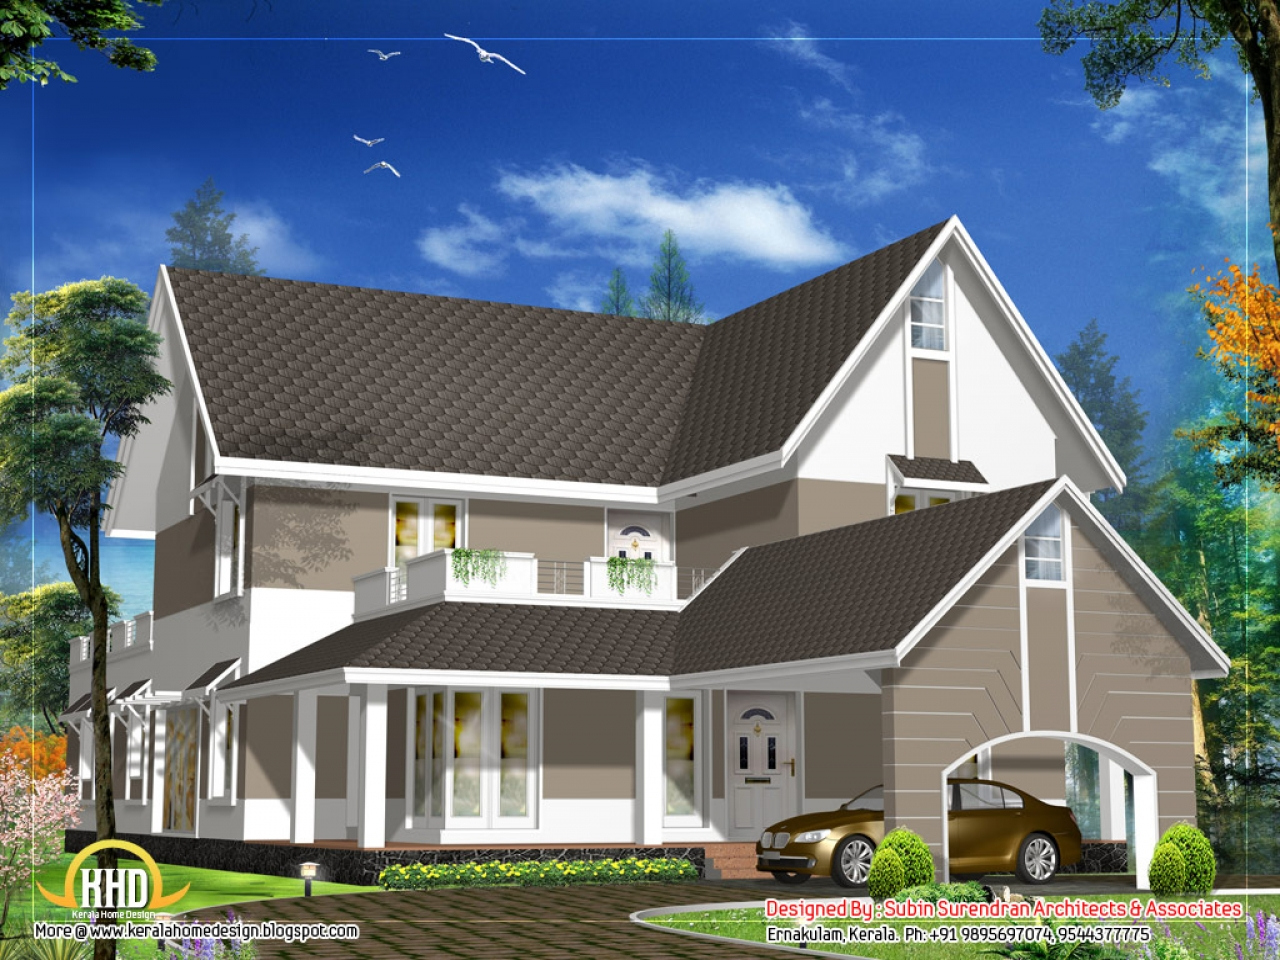 Sloping Roof House Design Sloped Roof Dog House Plans